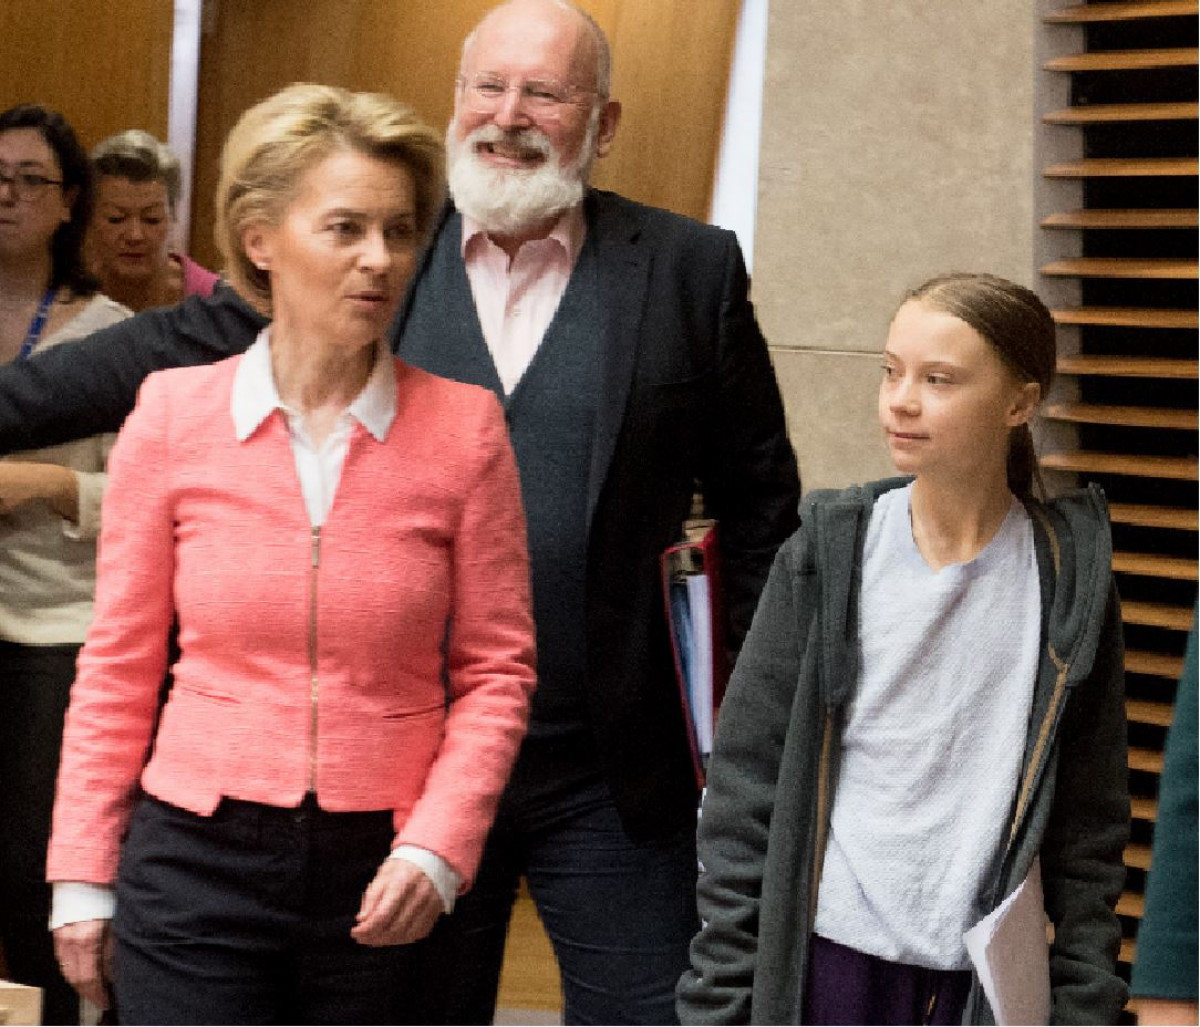 EU Commission President Ursula von der Leyen, climate commissioner Frans Timmermans, and climate activist Greta Thunberg. Source EU Commission